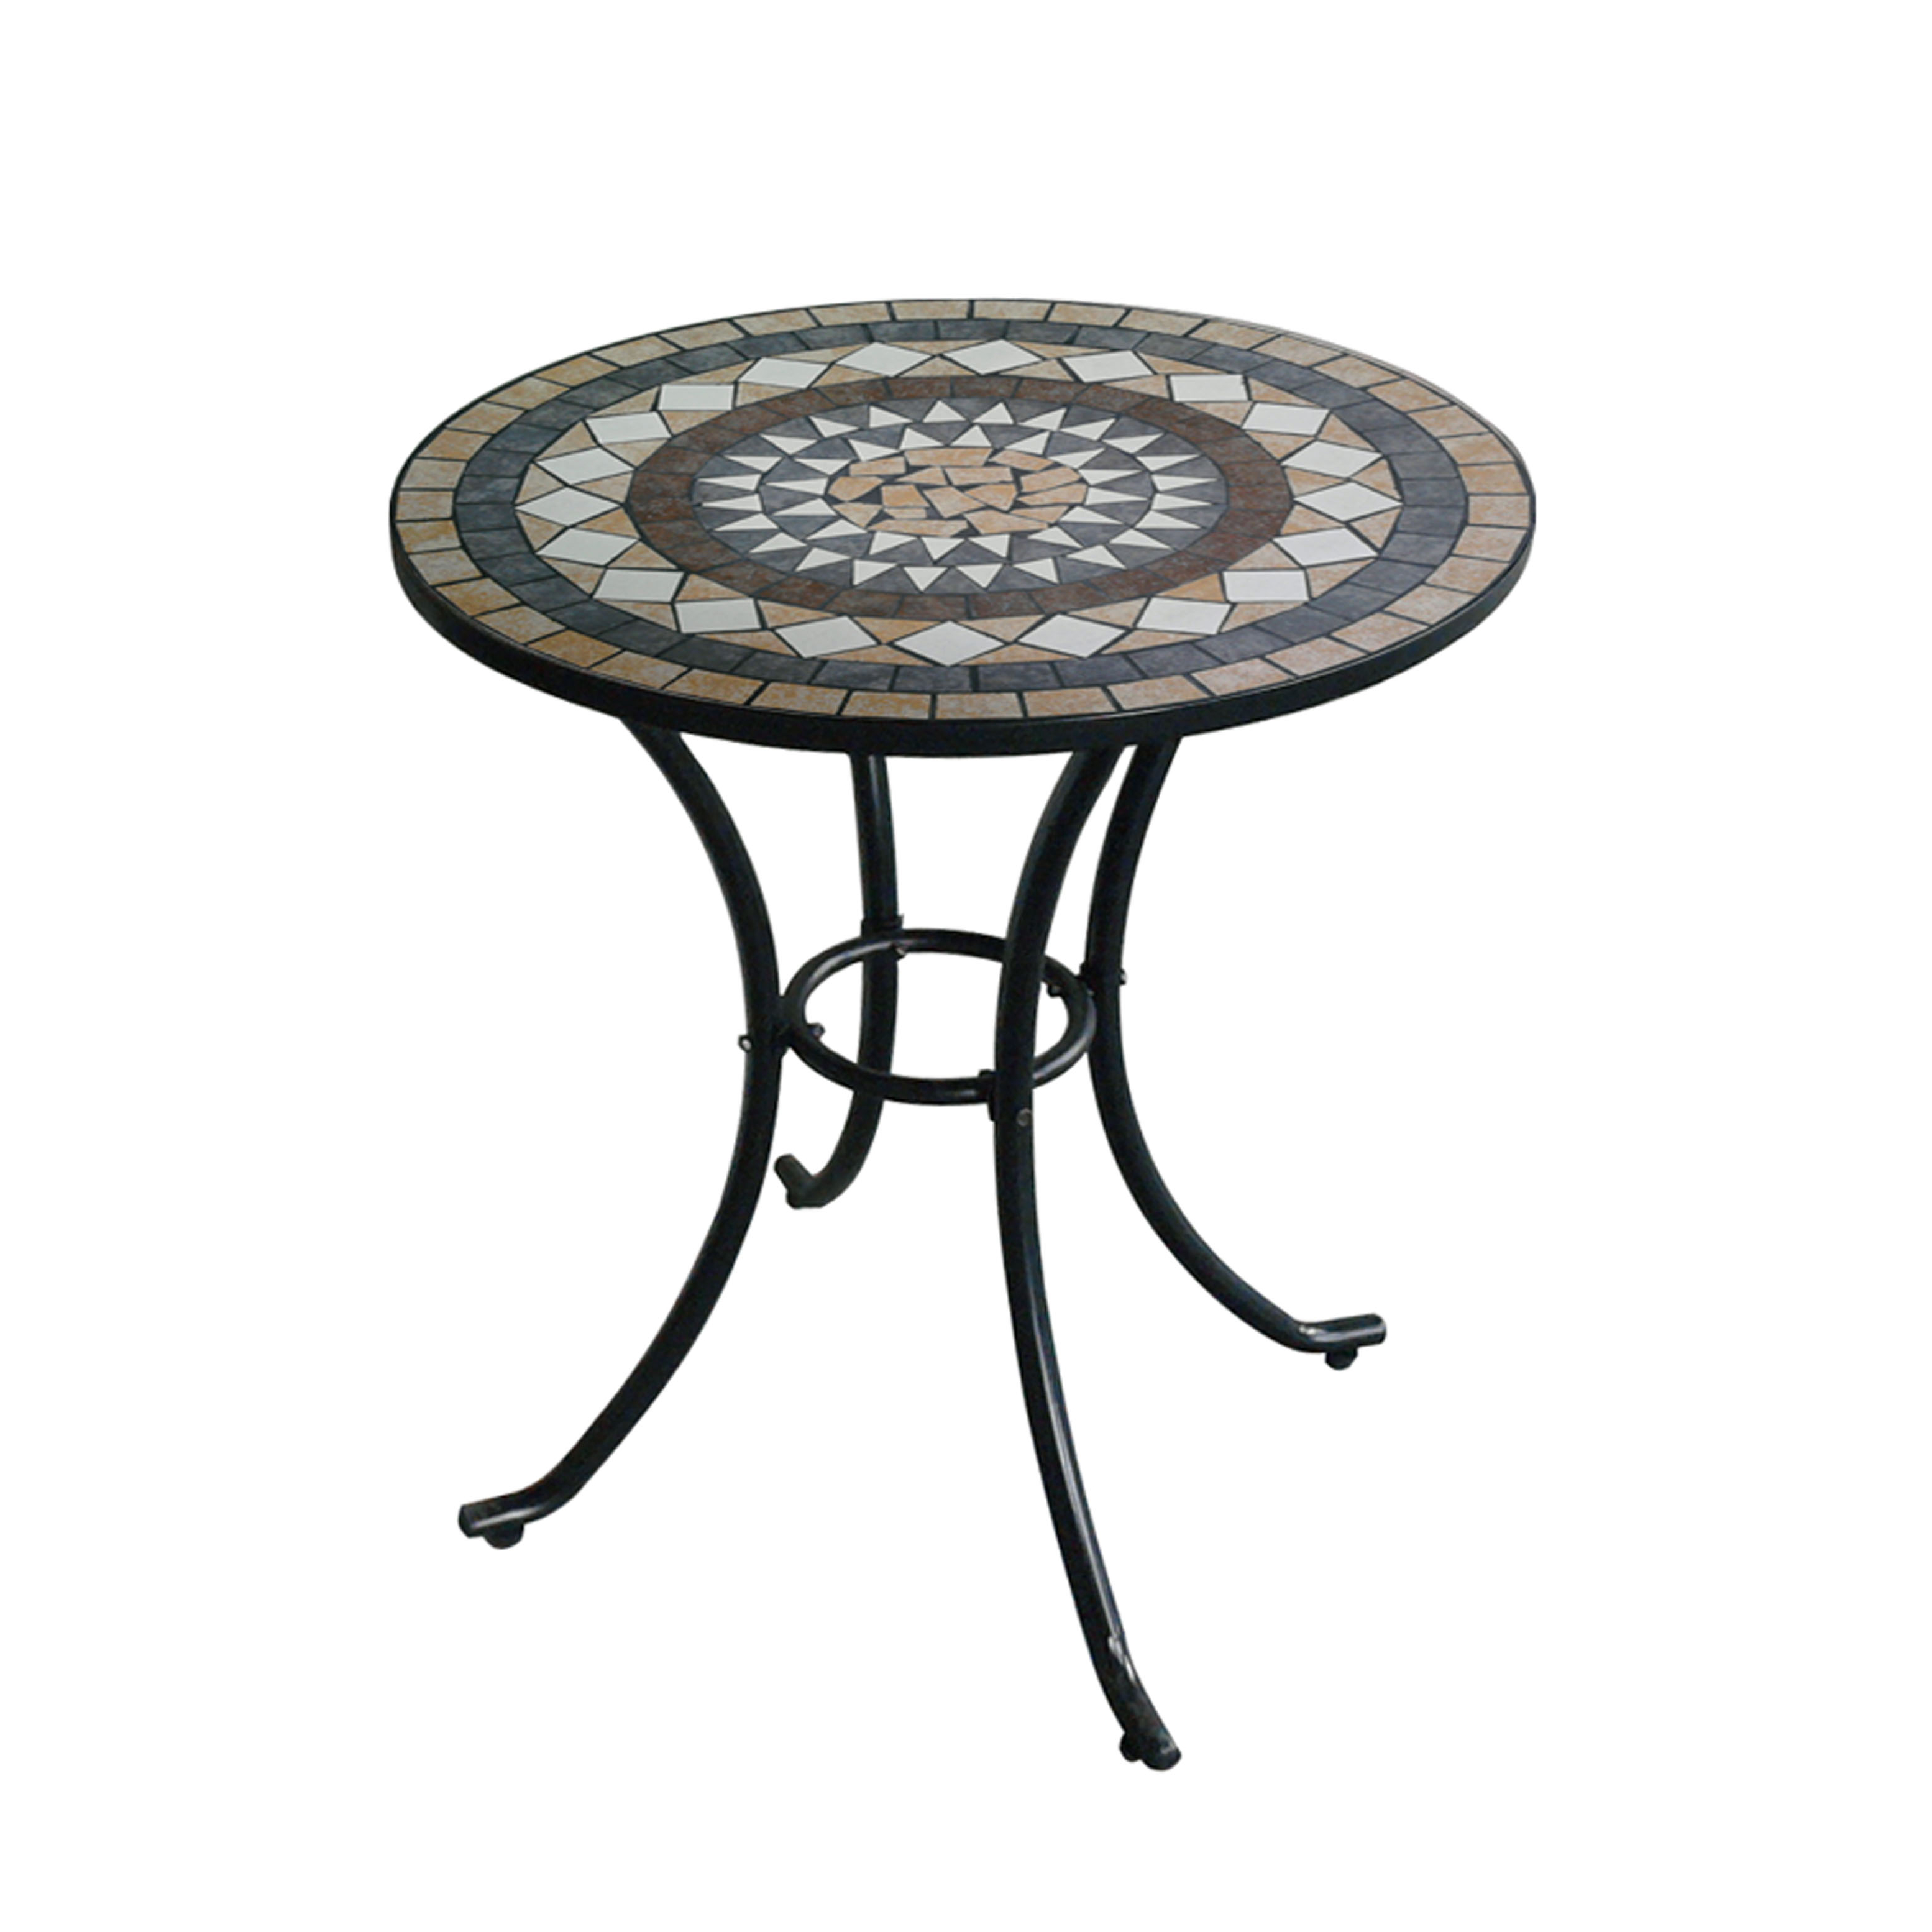 dia 60cm metal round mosaic top side table buy ceramic tile outdoor table round top table outdoor furniture round table product on alibaba com